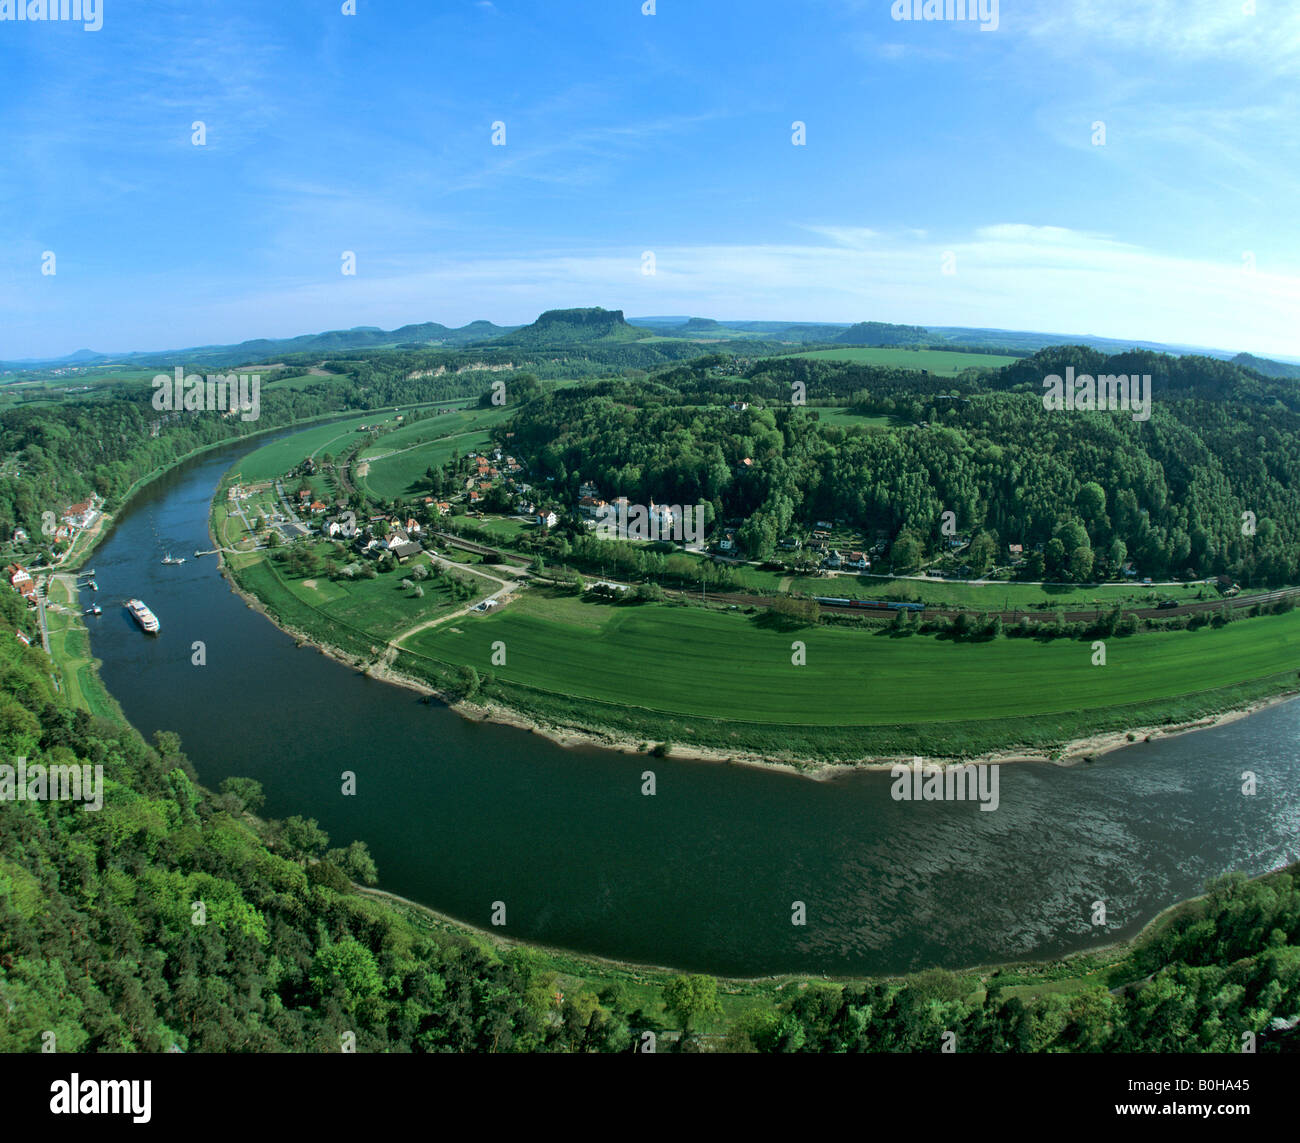 Elbe Sandstone Mountains, bastion, view of Rathen, Oberrathen district, Elbe River, Saxon Switzerland, Saxony, Germany Stock Photo